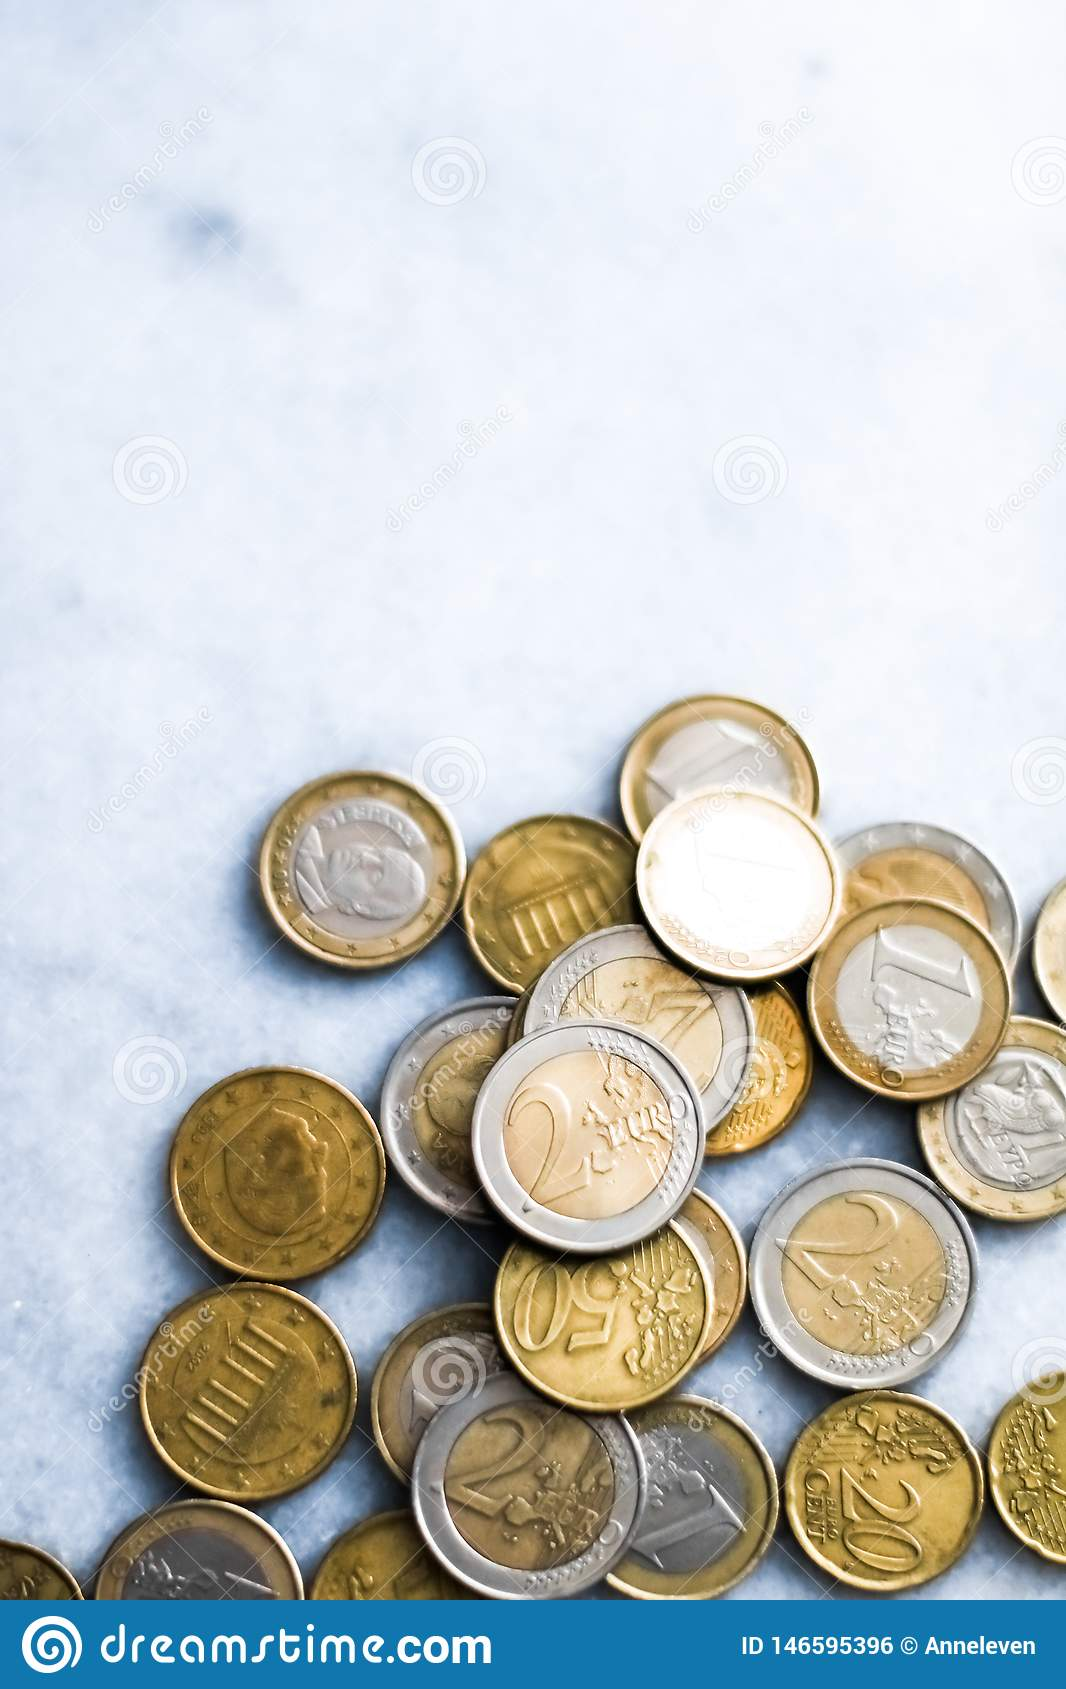 Euro coins, European Union currency